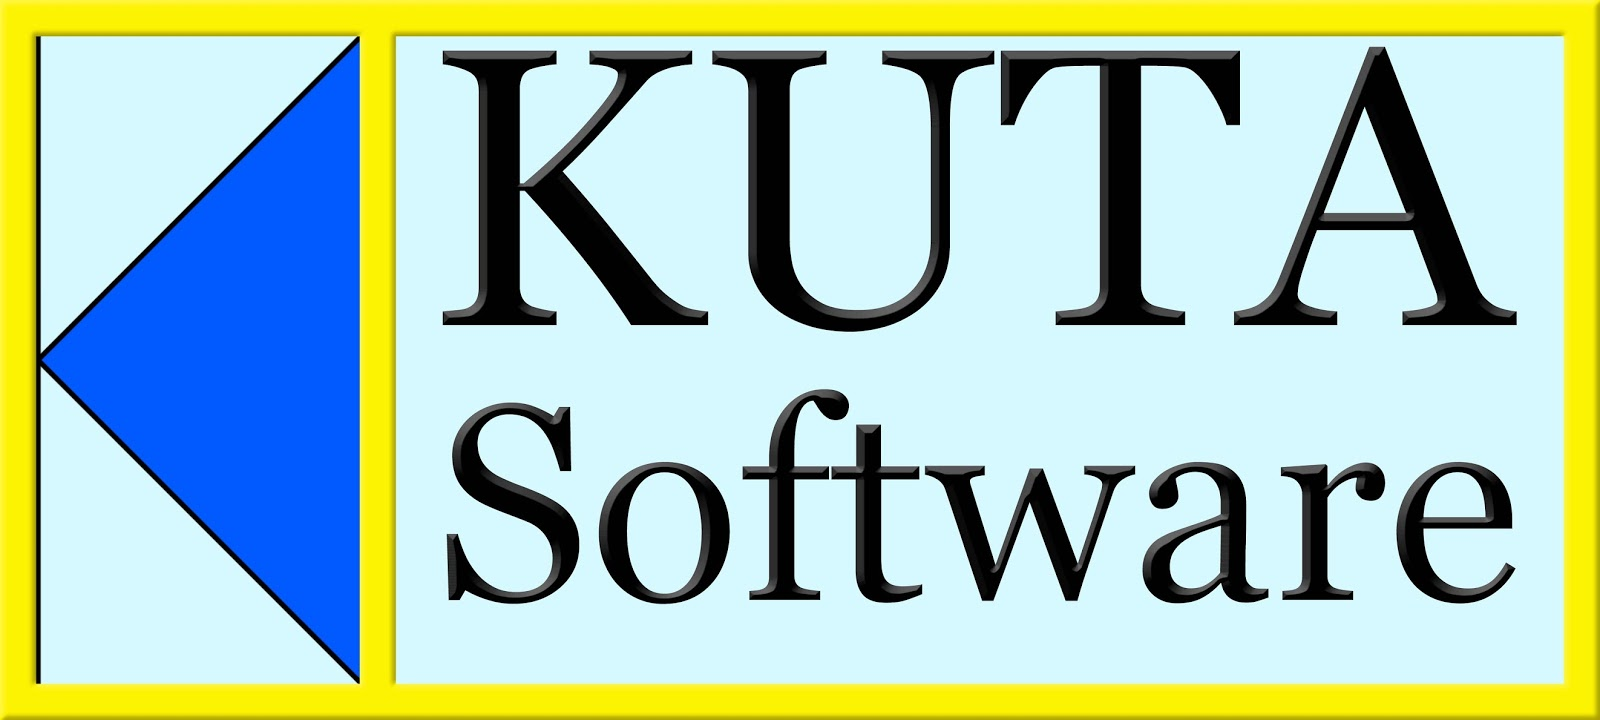 Worksheets Kuta Worksheets kuta software create customized math worksheets in minutes minutes